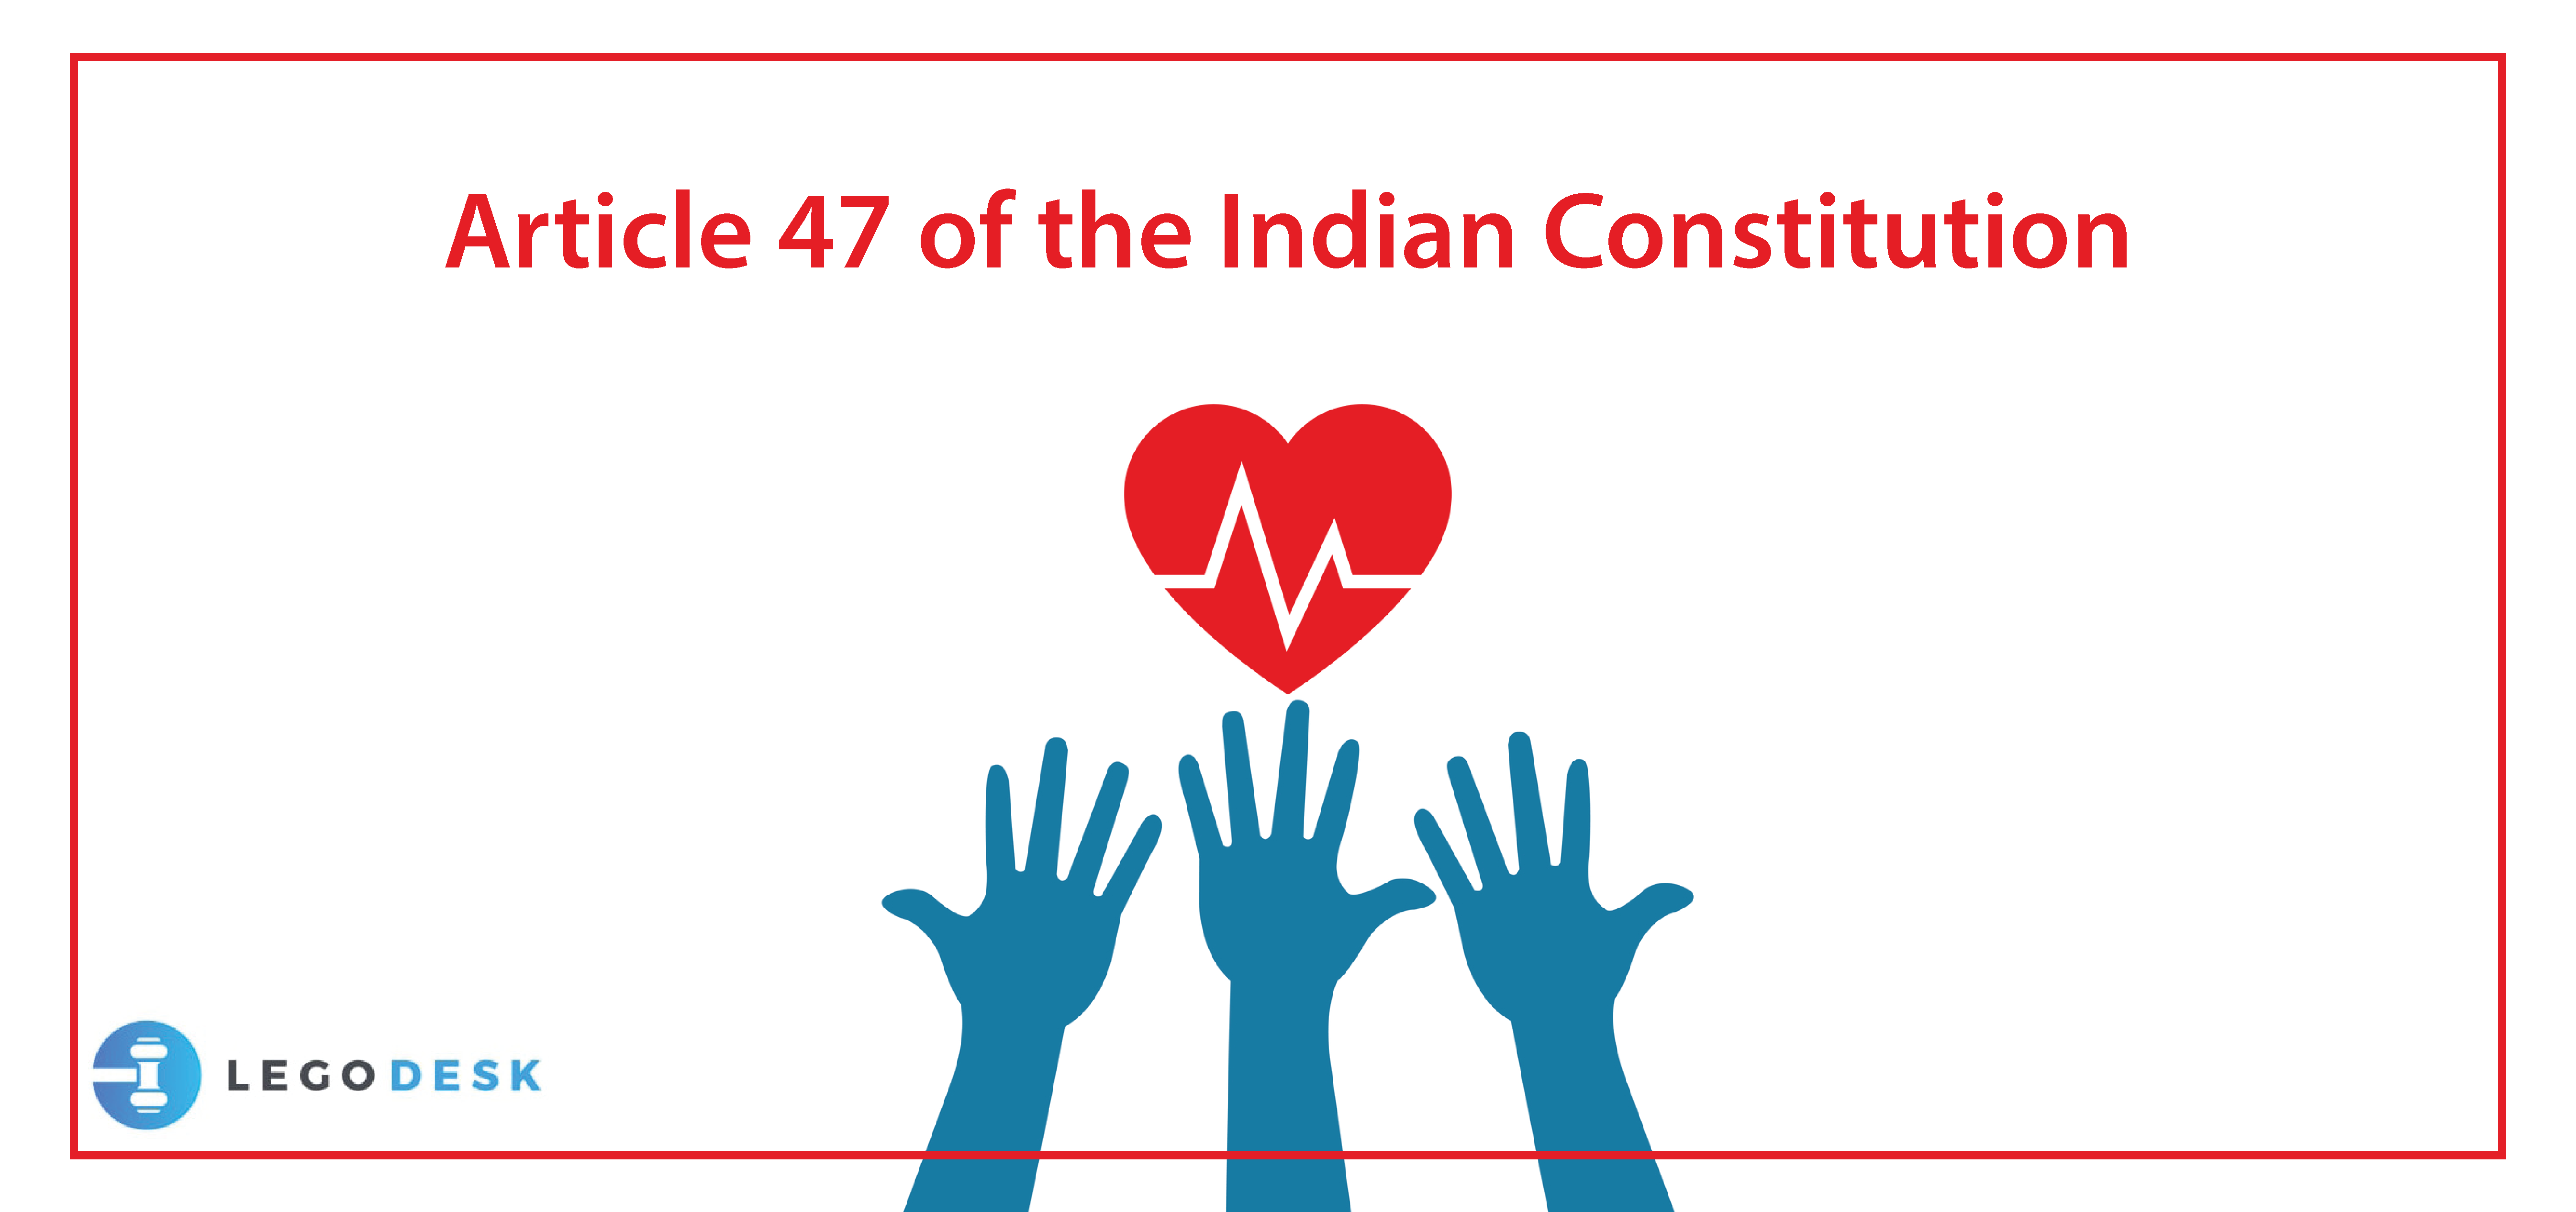 Article 47 of the Indian Constitution